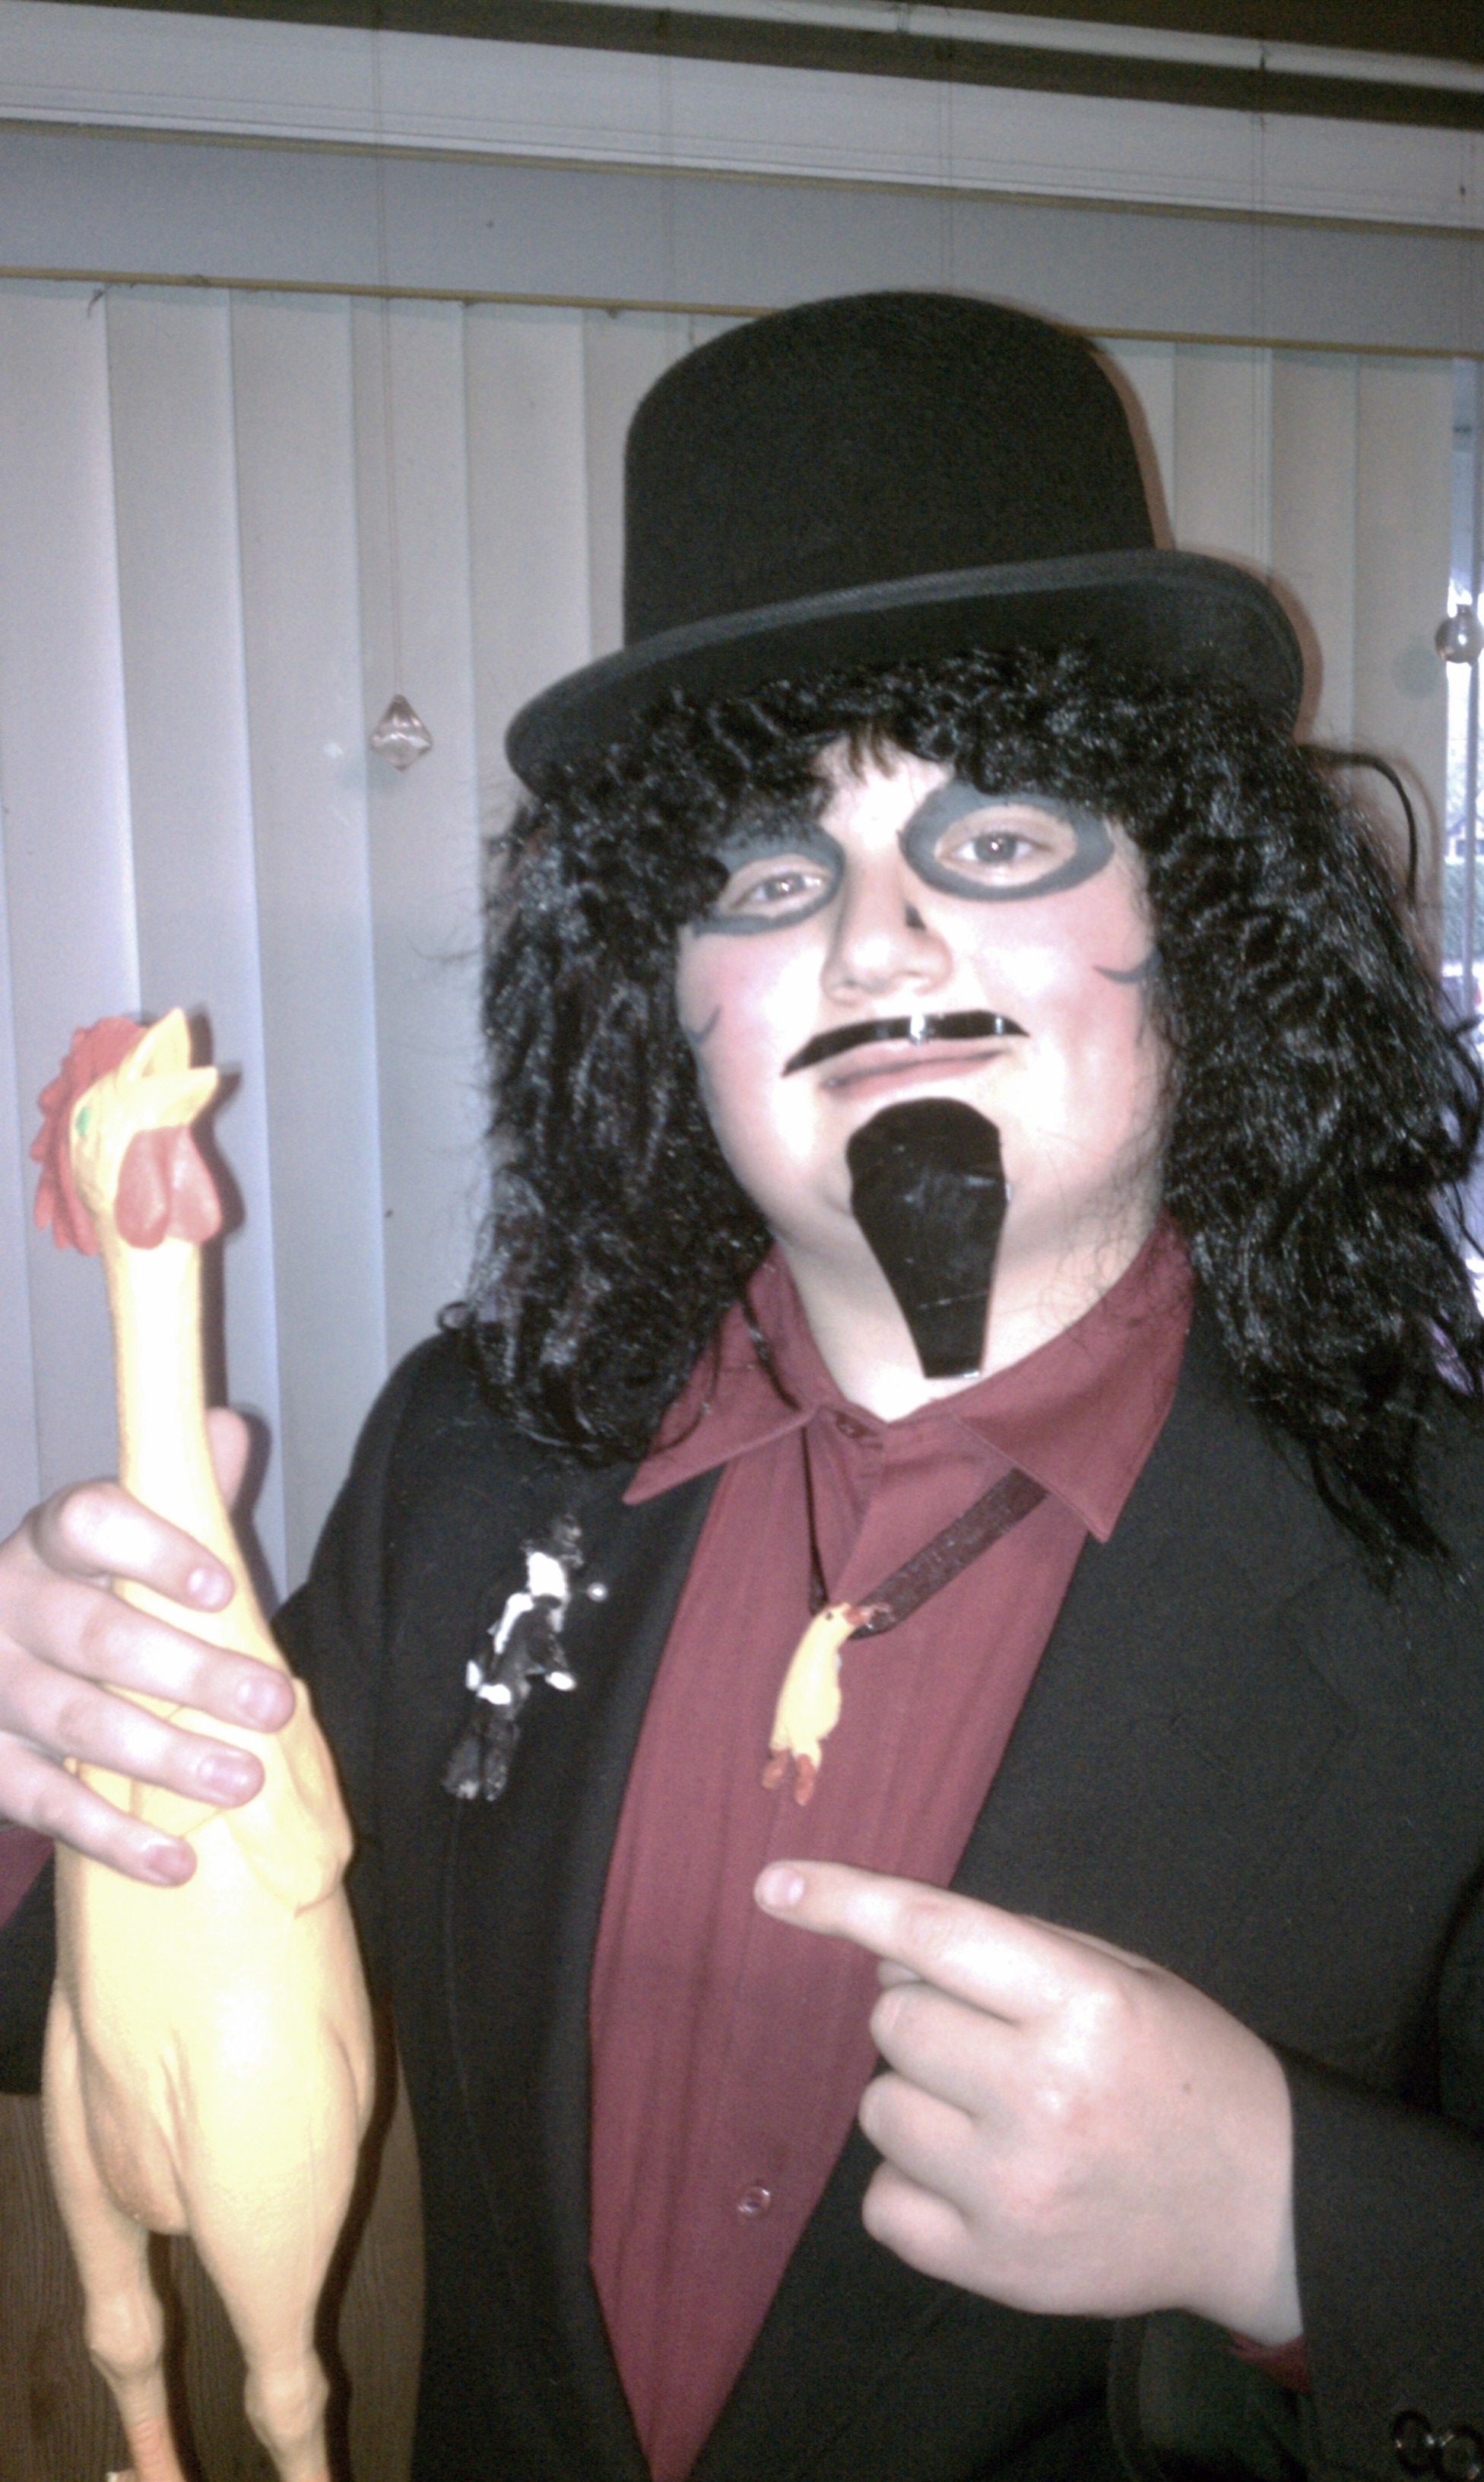 Miley Cyrus - Wikipedia Son of svengoolie pictures